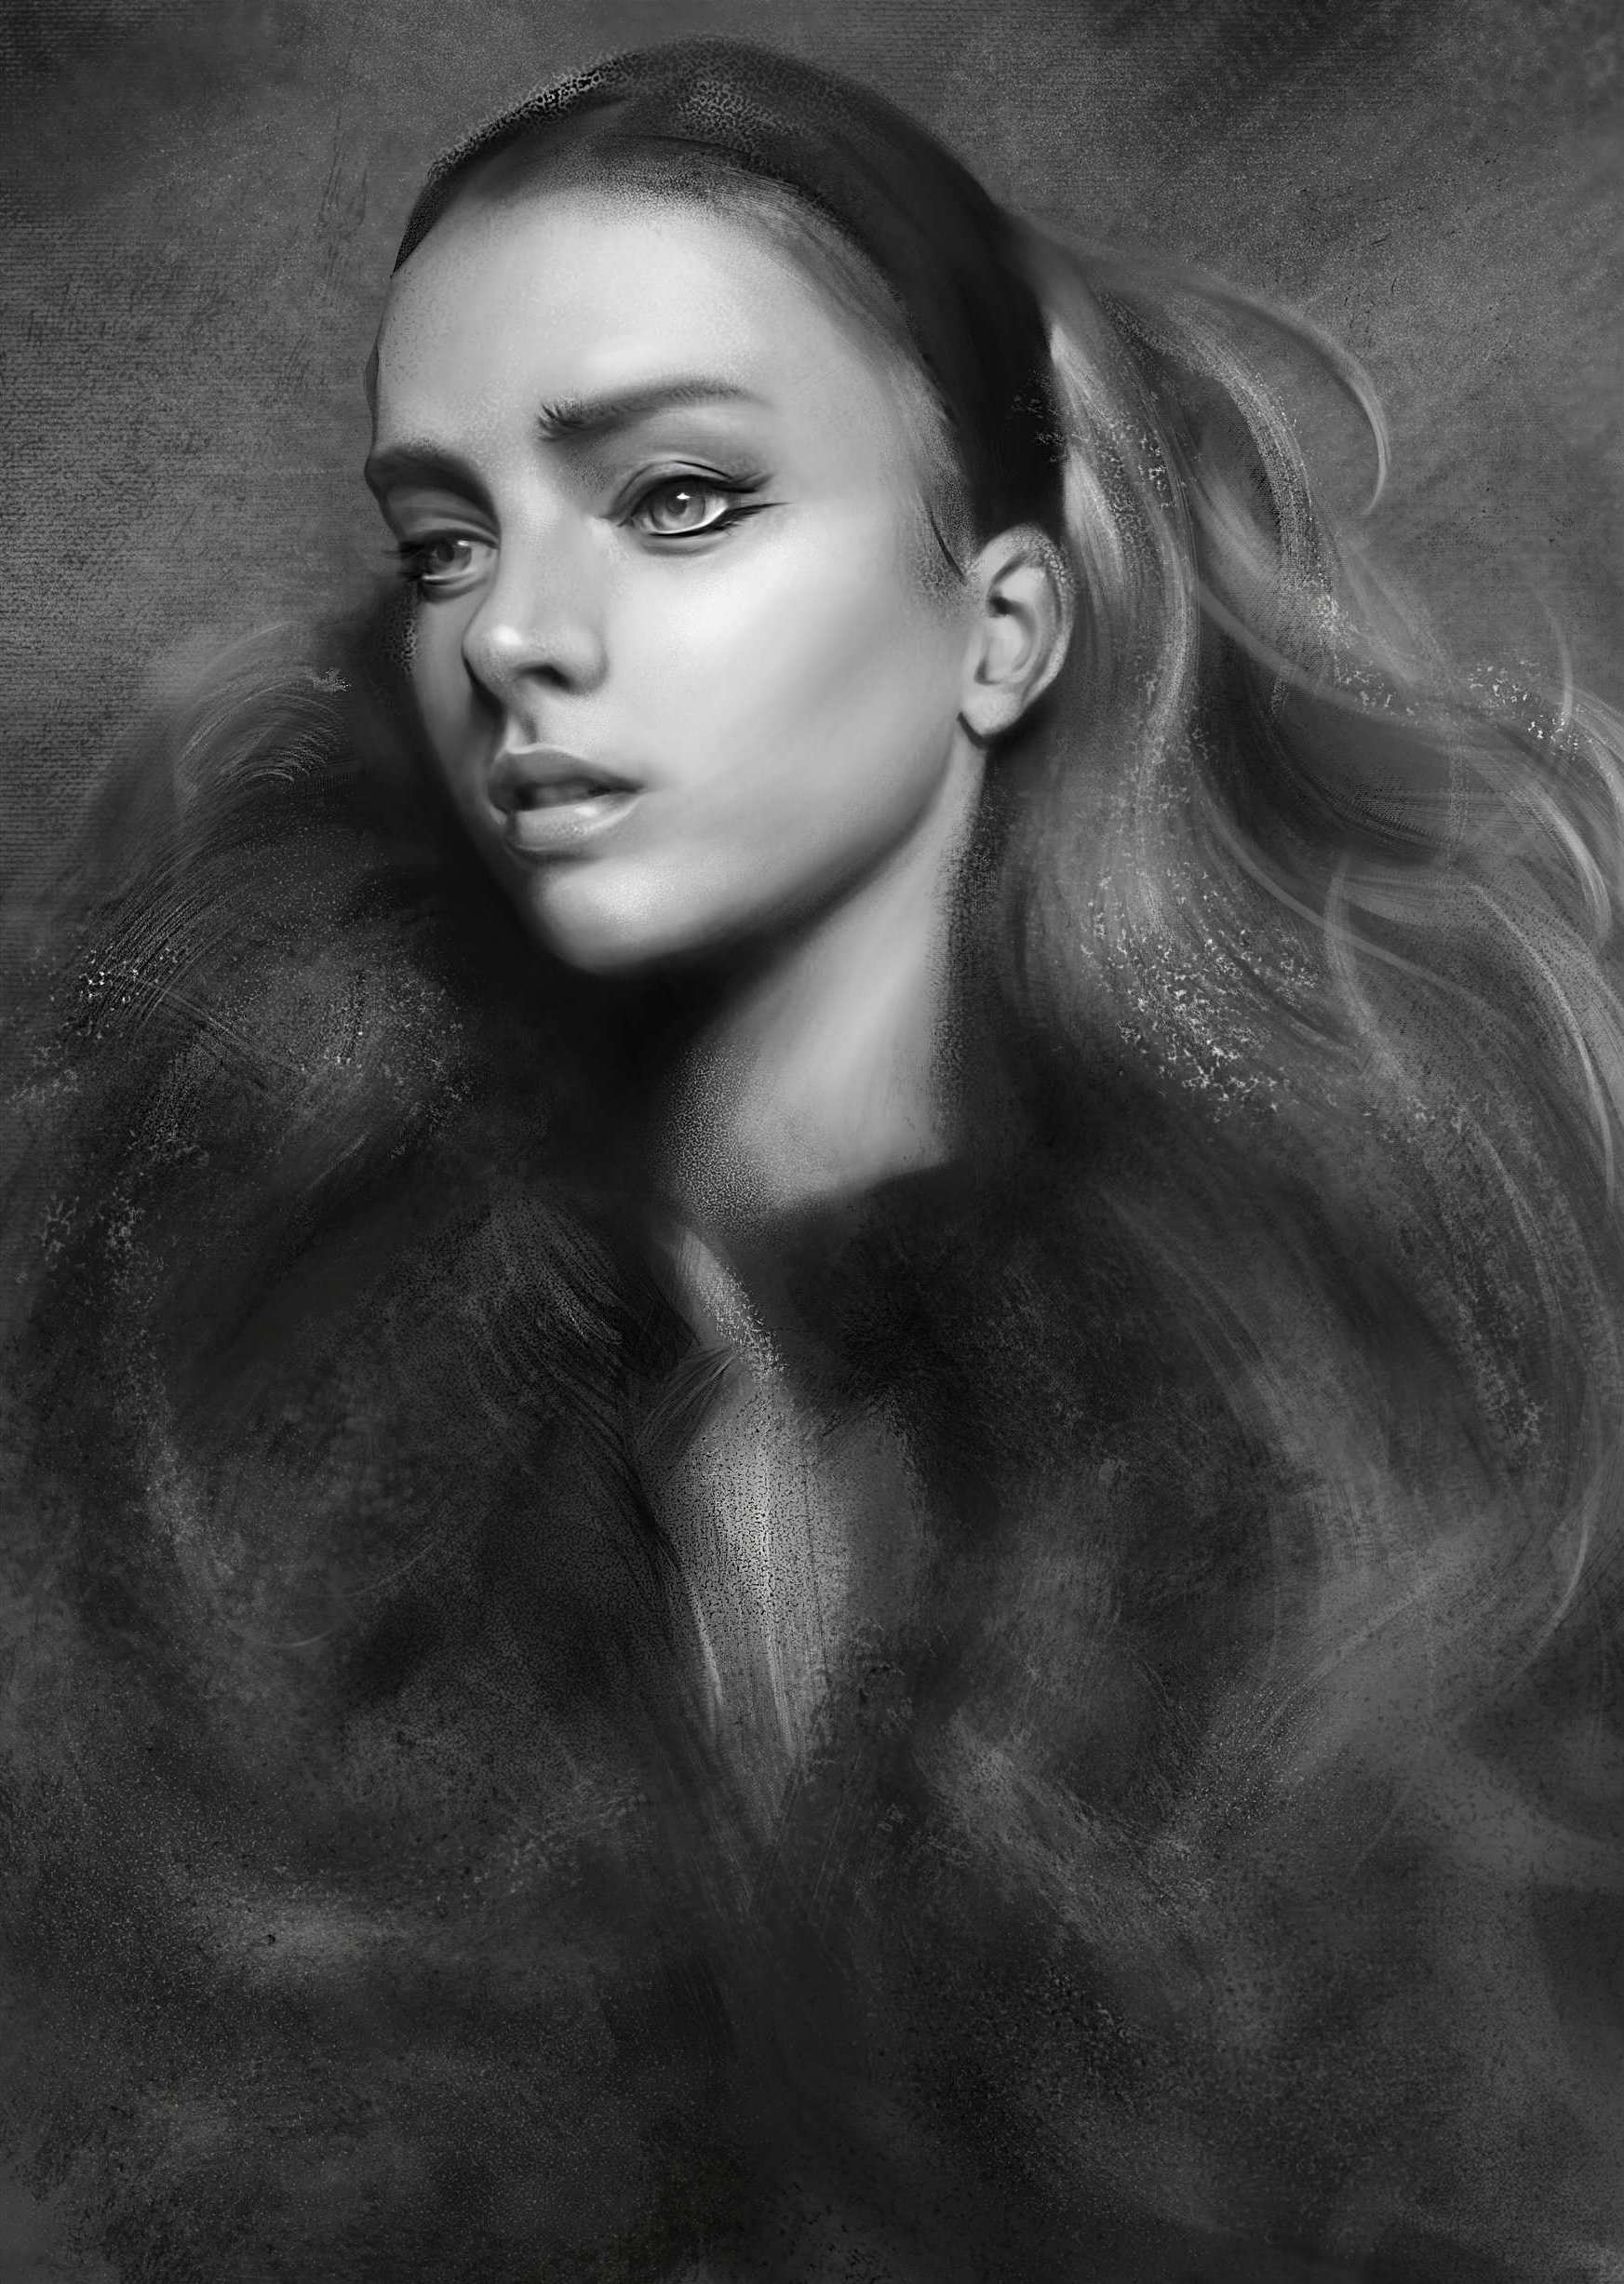 Another master study done - reference this time from yizheng ke